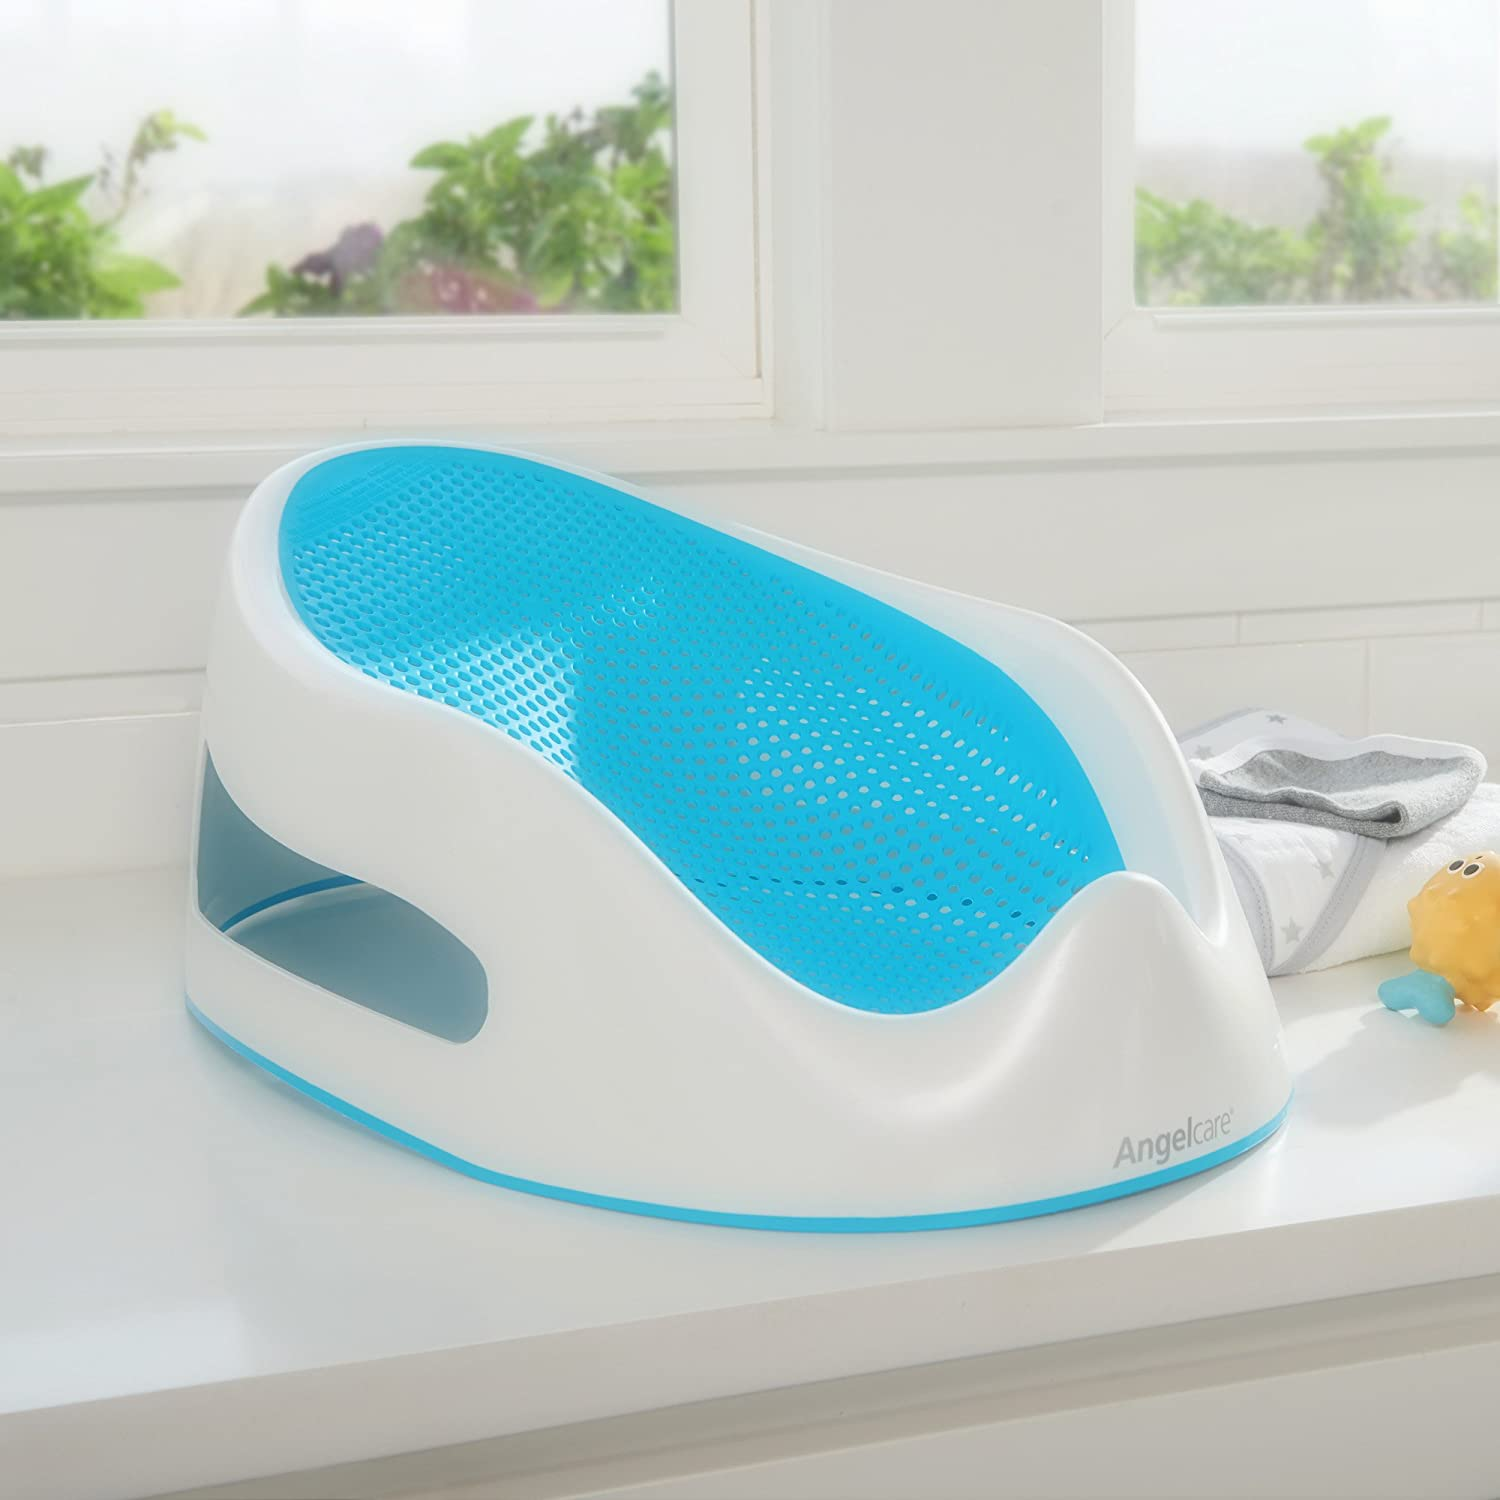 Amazon.com : Angelcare Baby Bath Support, Aqua : Baby Bathing Seats ...